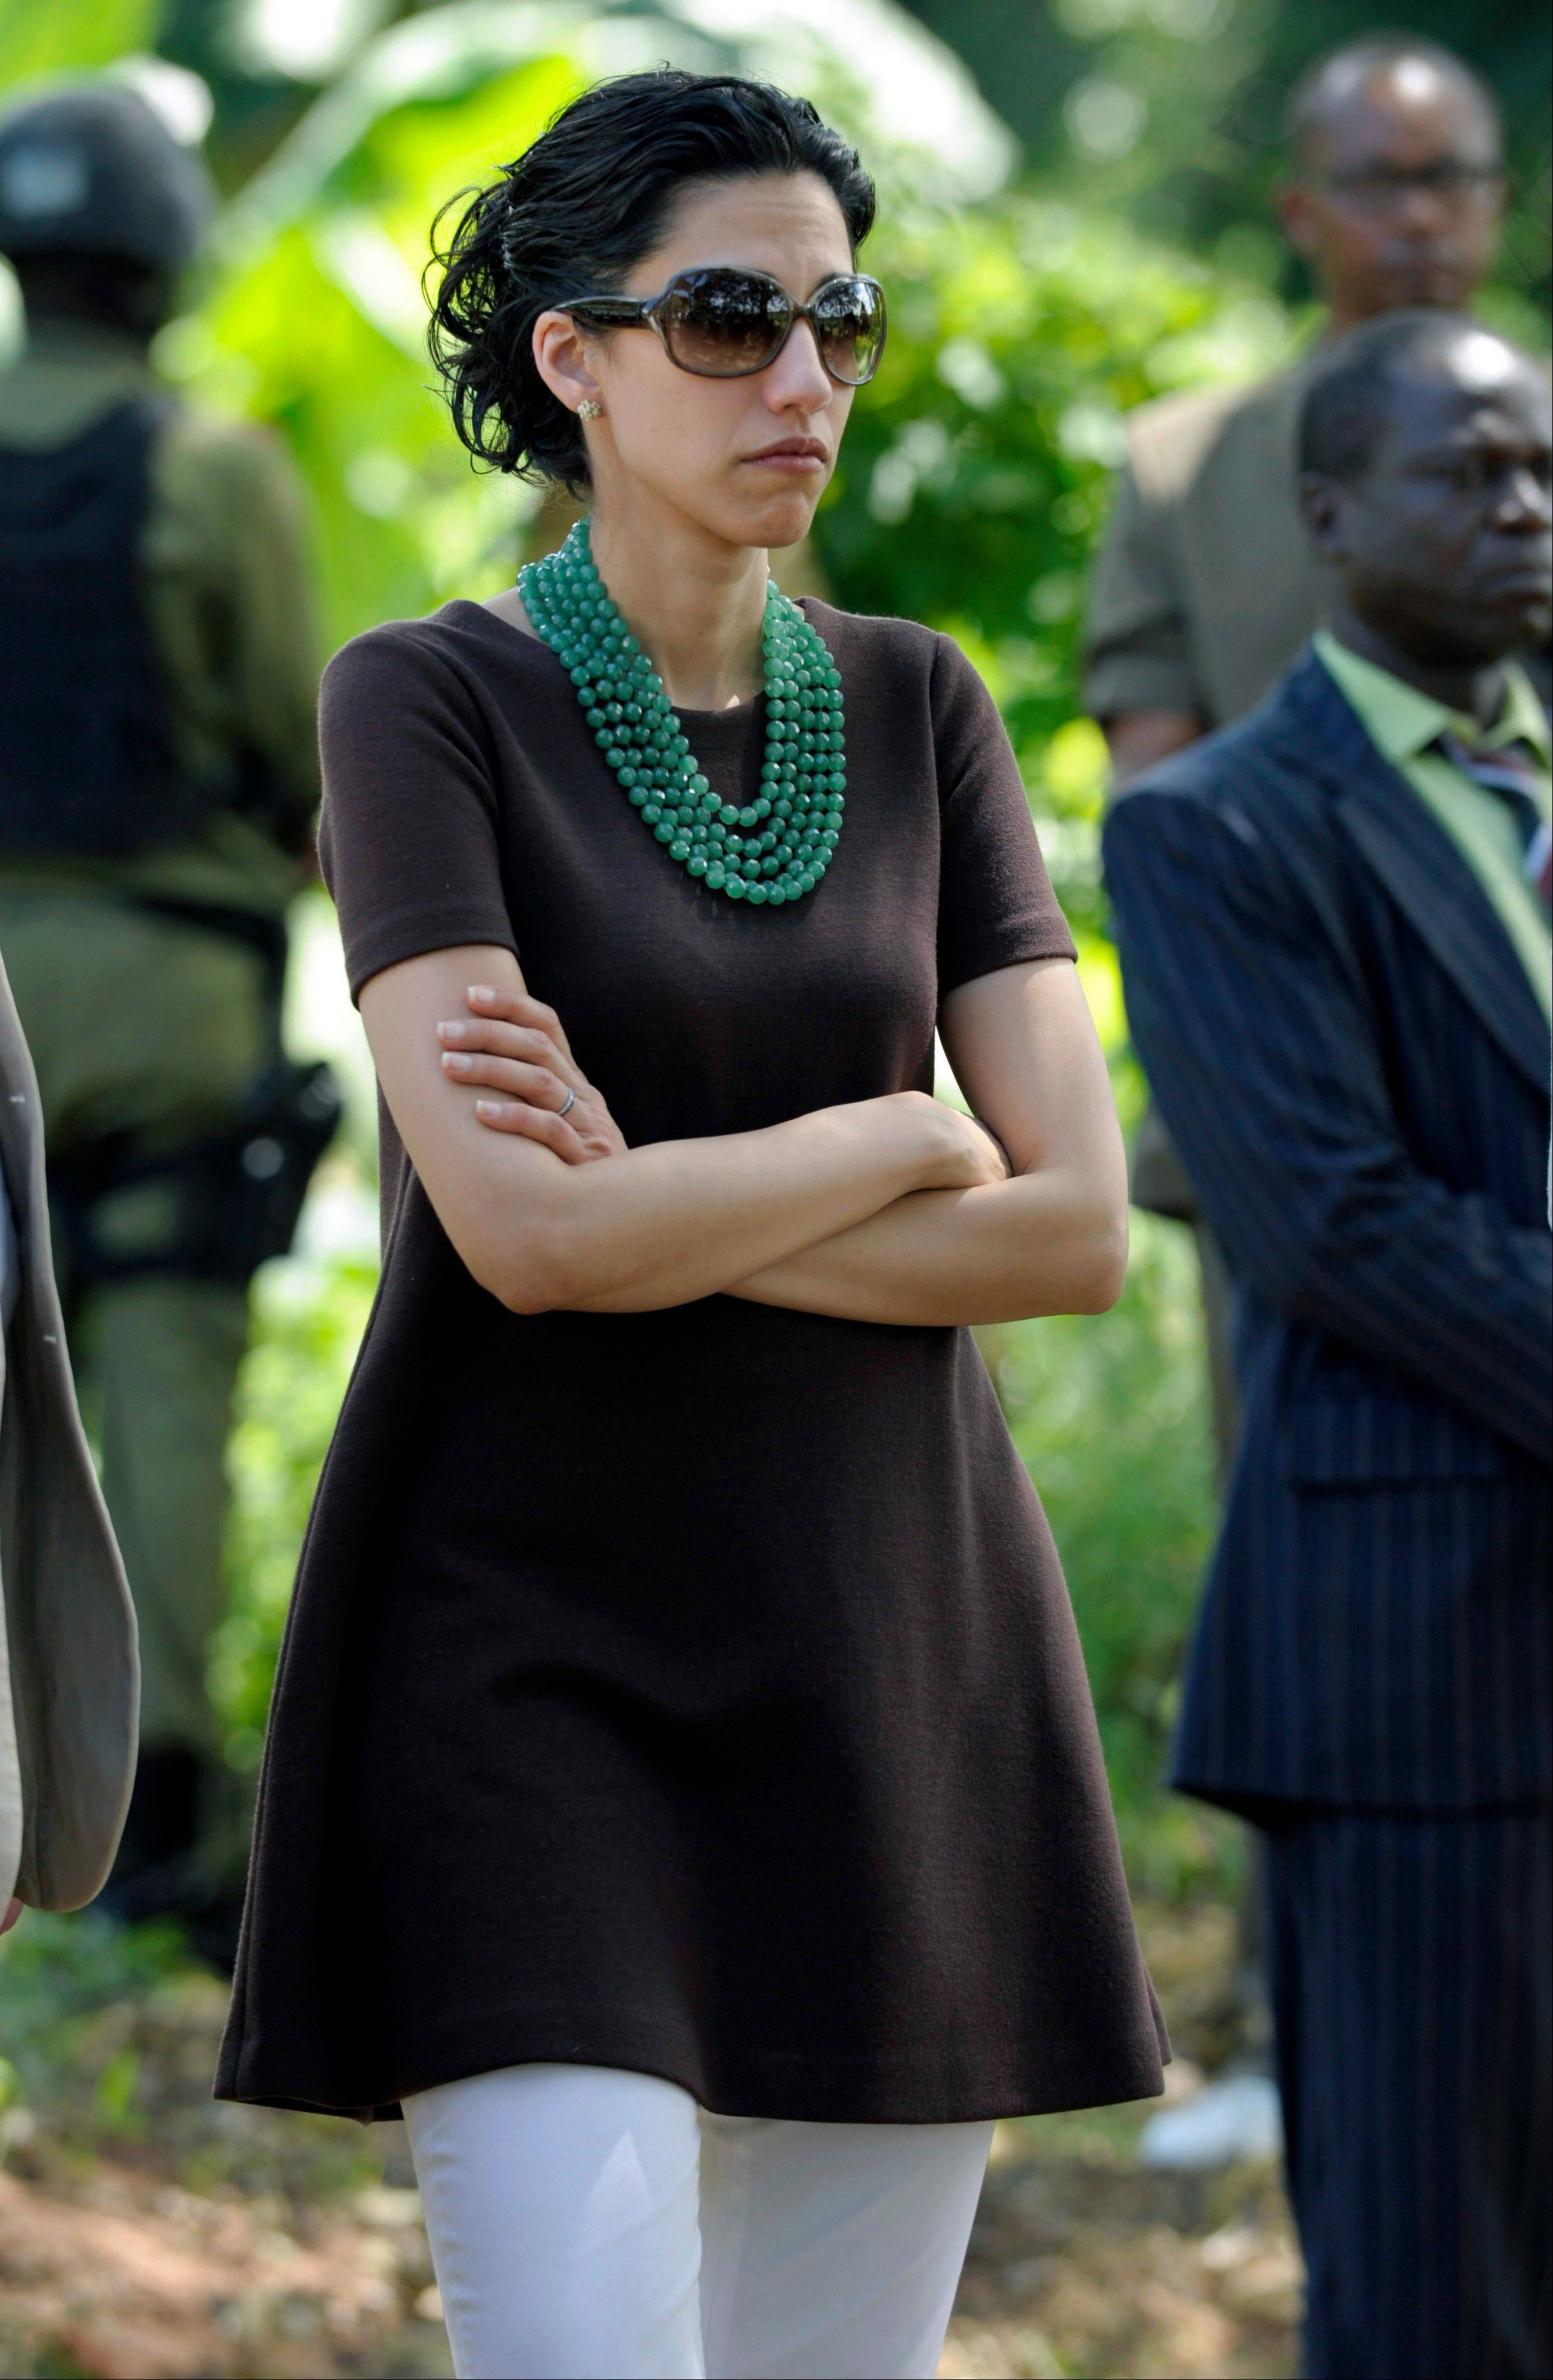 Huma Abedin, an aide to then Secretary of State Hillary Rodham Clinton, attends an event with farmers in Mlandizi, Tanzania, as controversy swirled around Abedin's husband, Anthony Weiner.